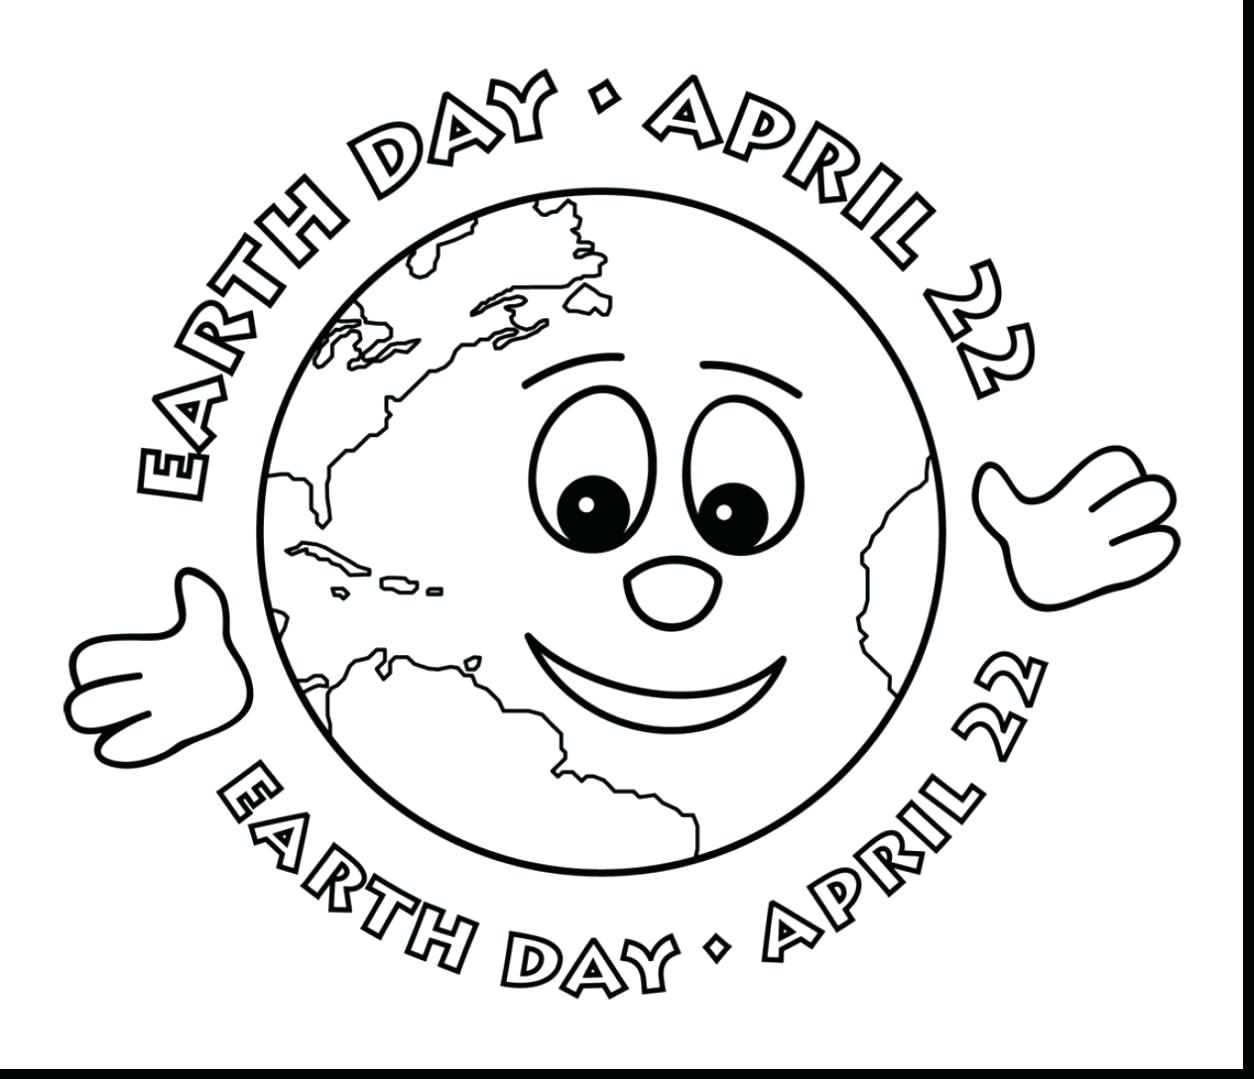 Earth Day Coloring Pages At Getcolorings